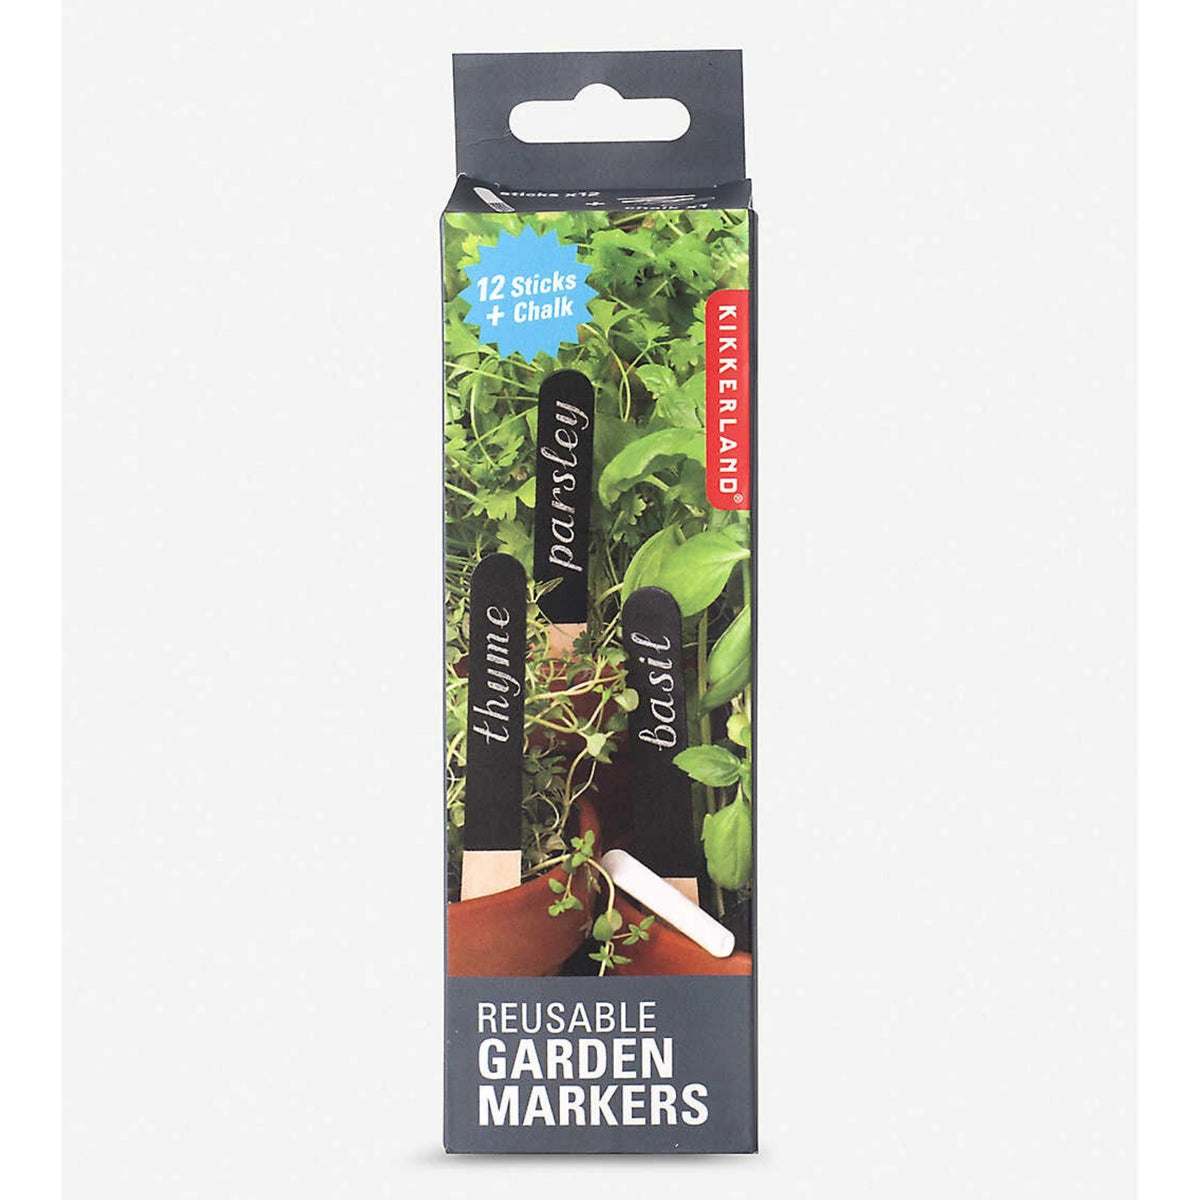 Reusable Garden Markers (12 Pack)